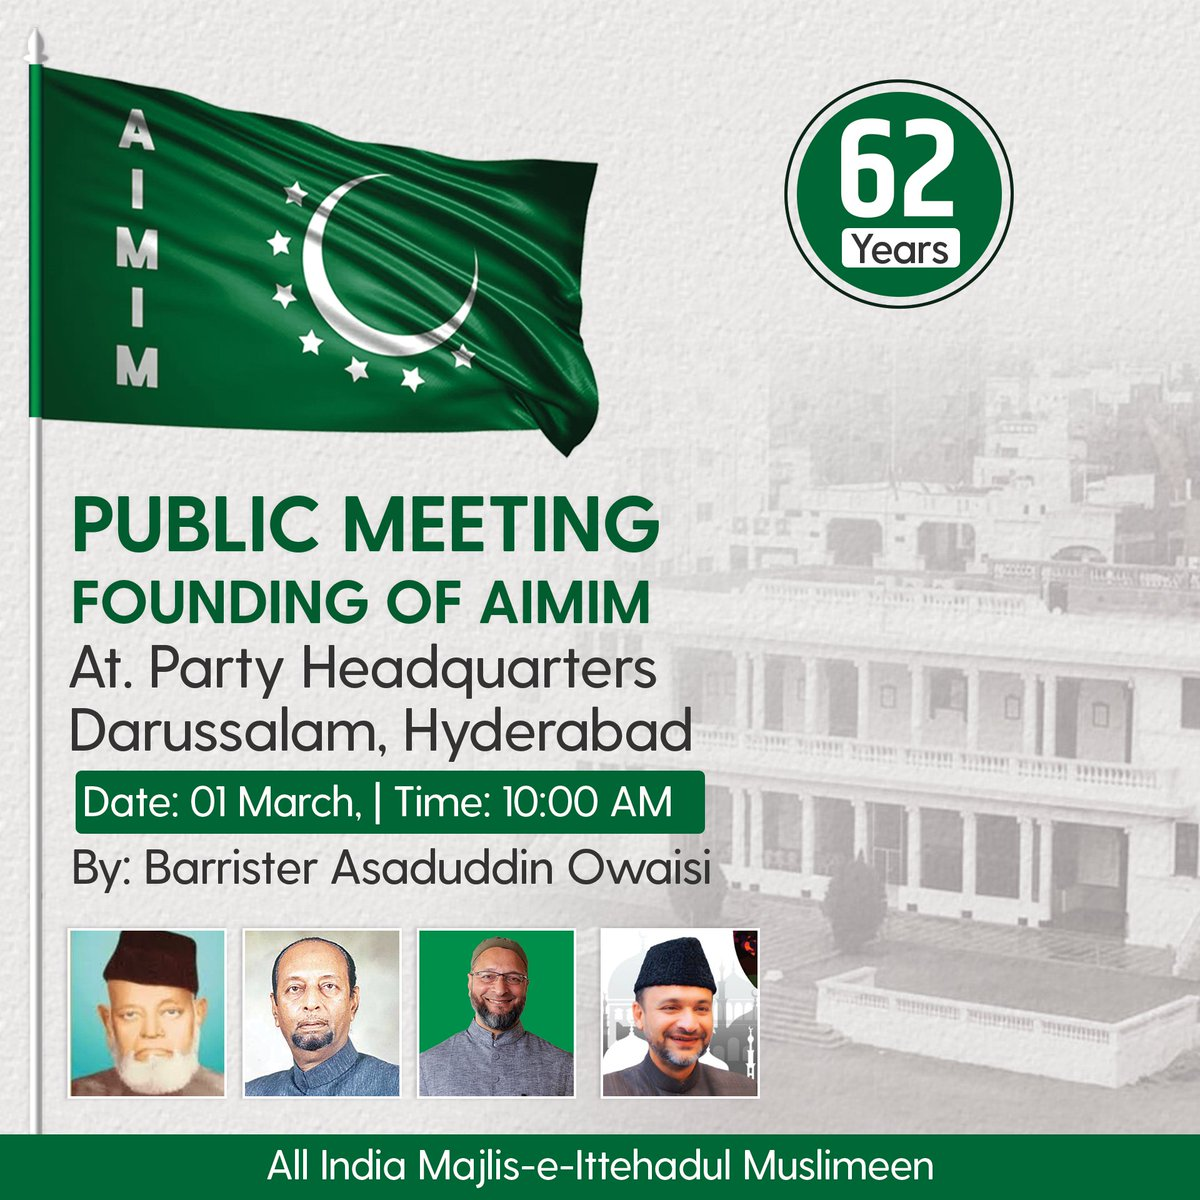 On the occasion of 62 years of the founding of All India Majlis-e-Ittehadul Muslimeen, AIMIM president and Hyderabad MP Barrister Asaduddin Owaisi will be addressing a public meeting on 1st March at Darussalam, Hyderabad.